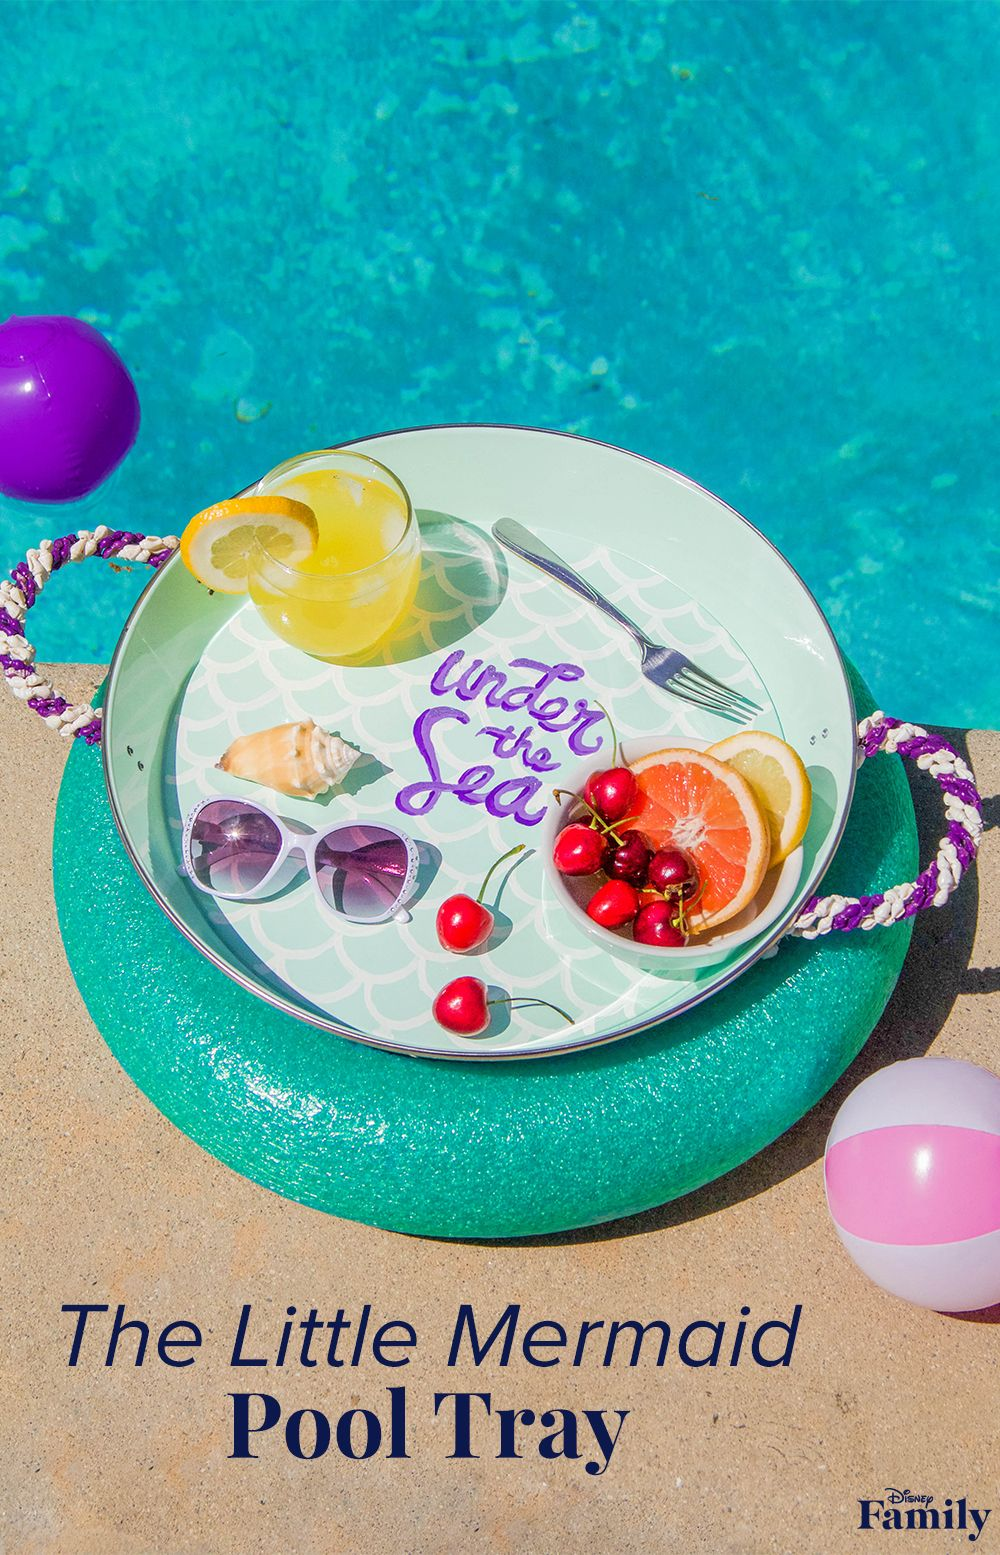 """Turn a regular tray into a floating buffet! Have a blast making a splash in your own backyard with the help of this Little MermaidPool Tray you can make for your Disney-loving family. All you'll need is a round, lightweight tray, a pool noodle, and lots of mermaid flair to create this fun floater with your kiddo! Click to """"sea"""" the DIY Little Mermaid tutorial."""